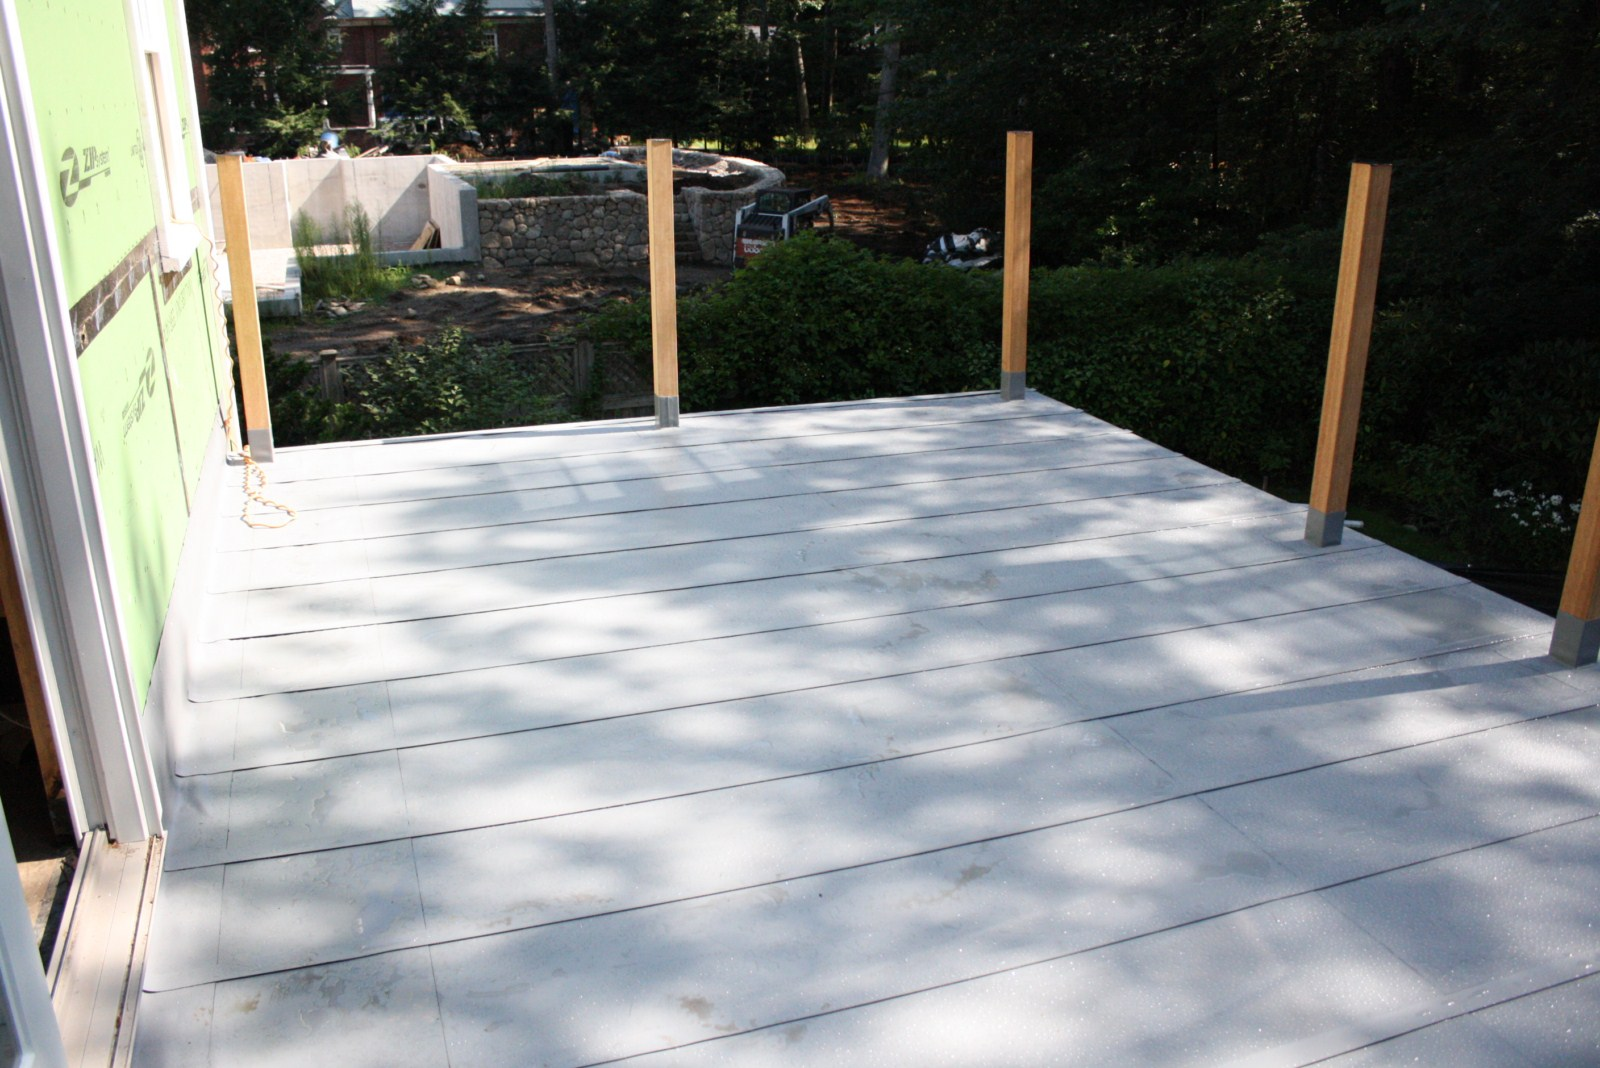 Using Pvc Roofing For Flat Roof Deck Waterproofing Pvc